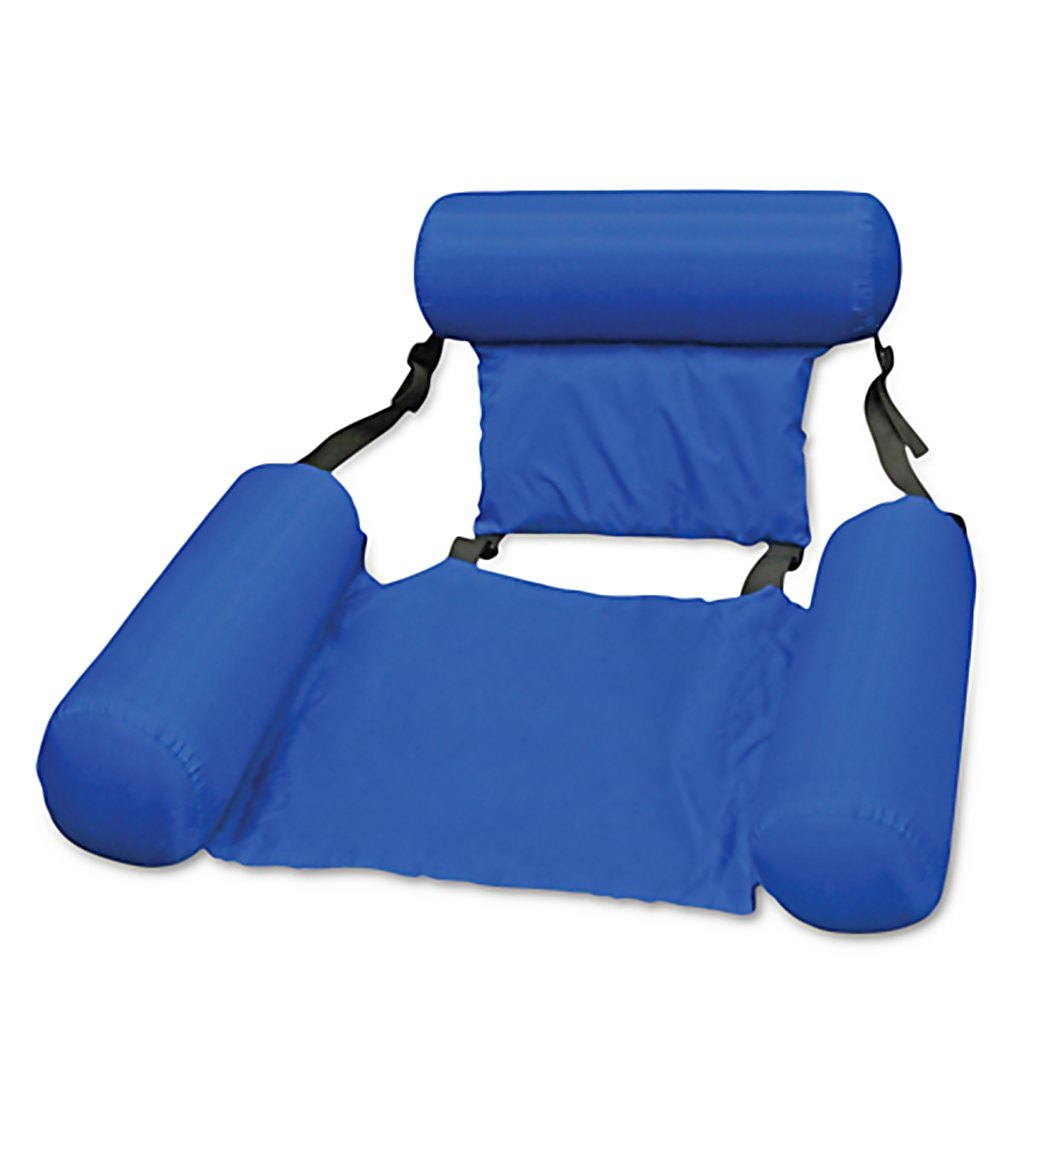 lounger pool colors lounge water hamm poolmaster prices the air hammock assorted